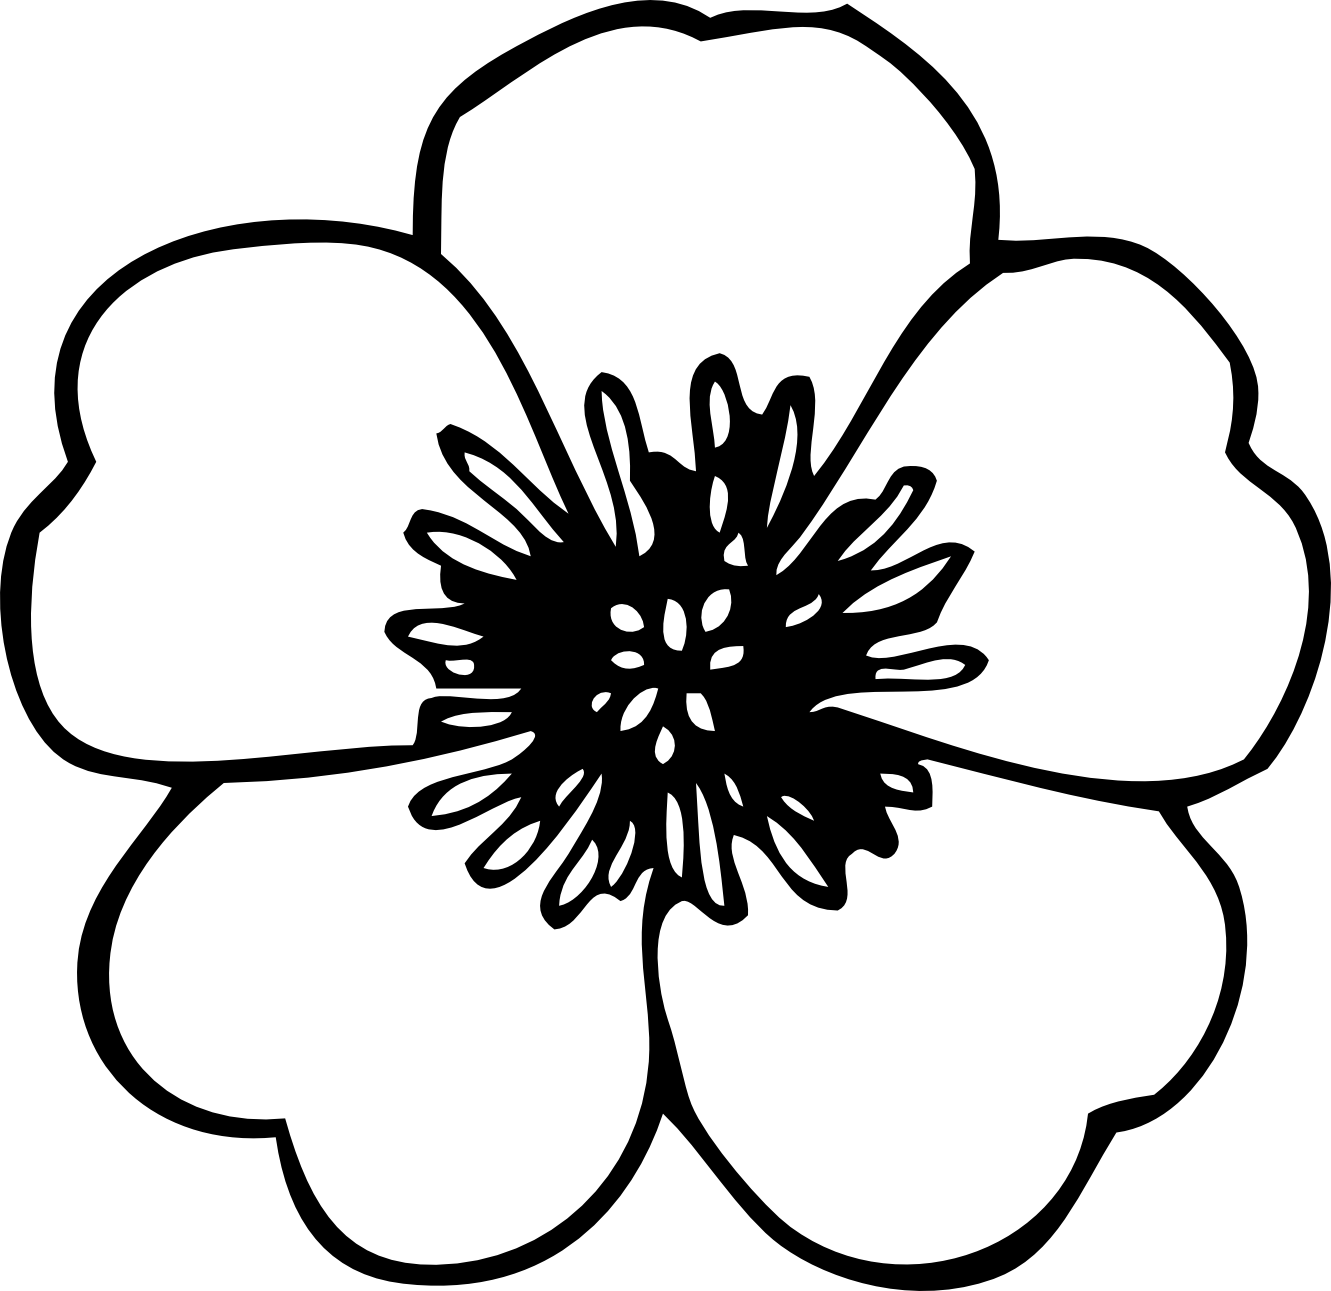 Flower black and white clipart.